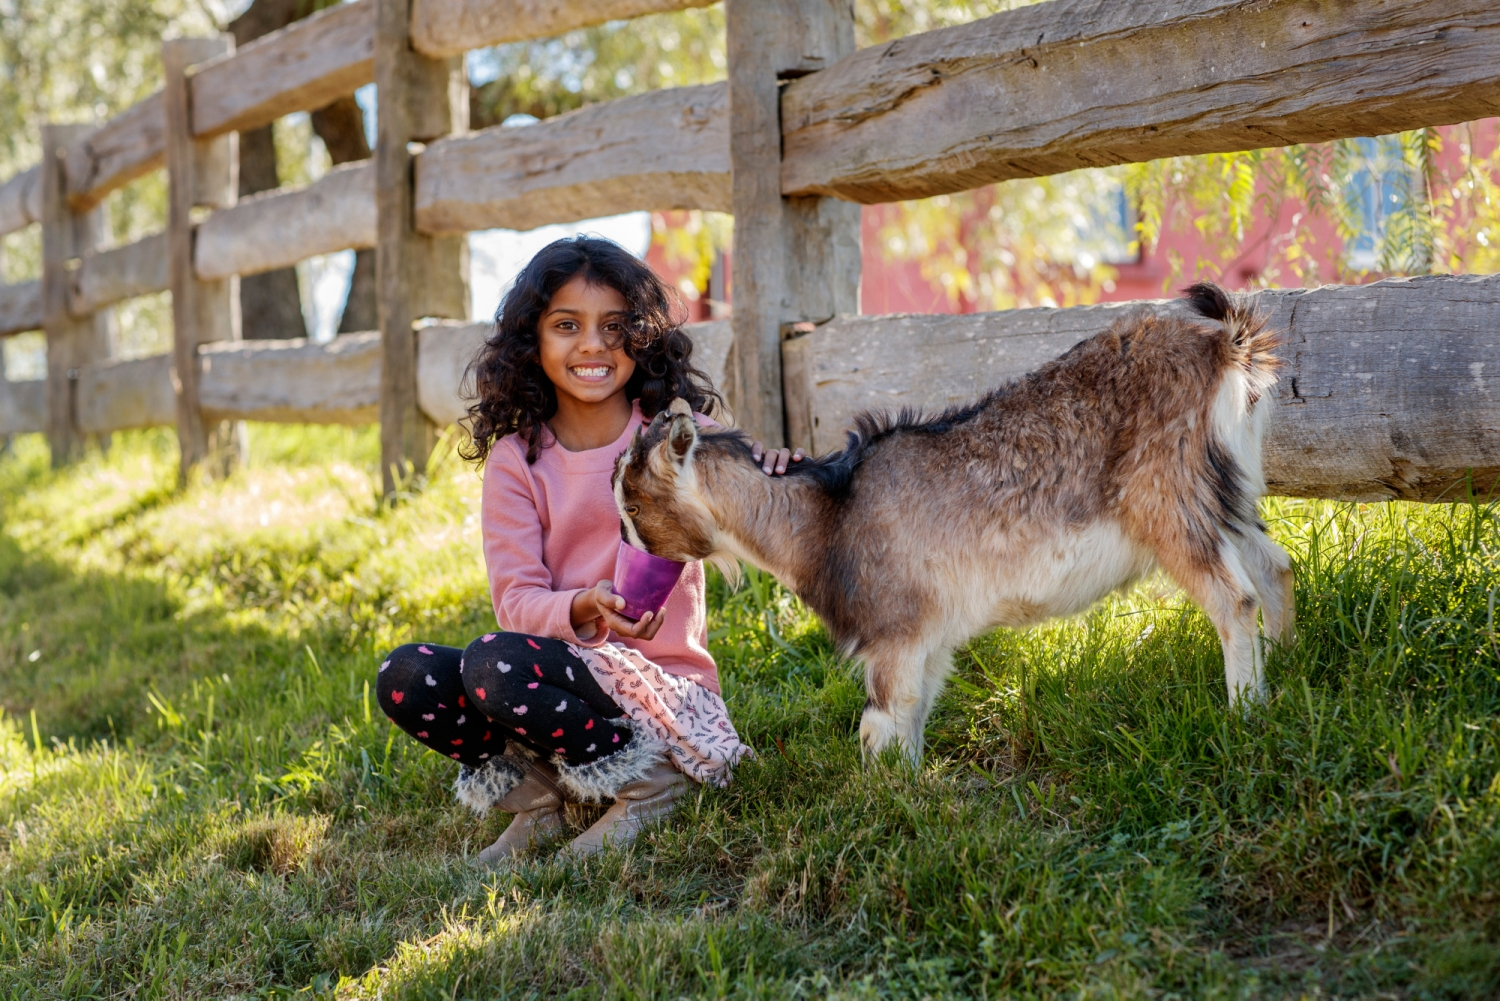 Girl holding a goat in front of fence